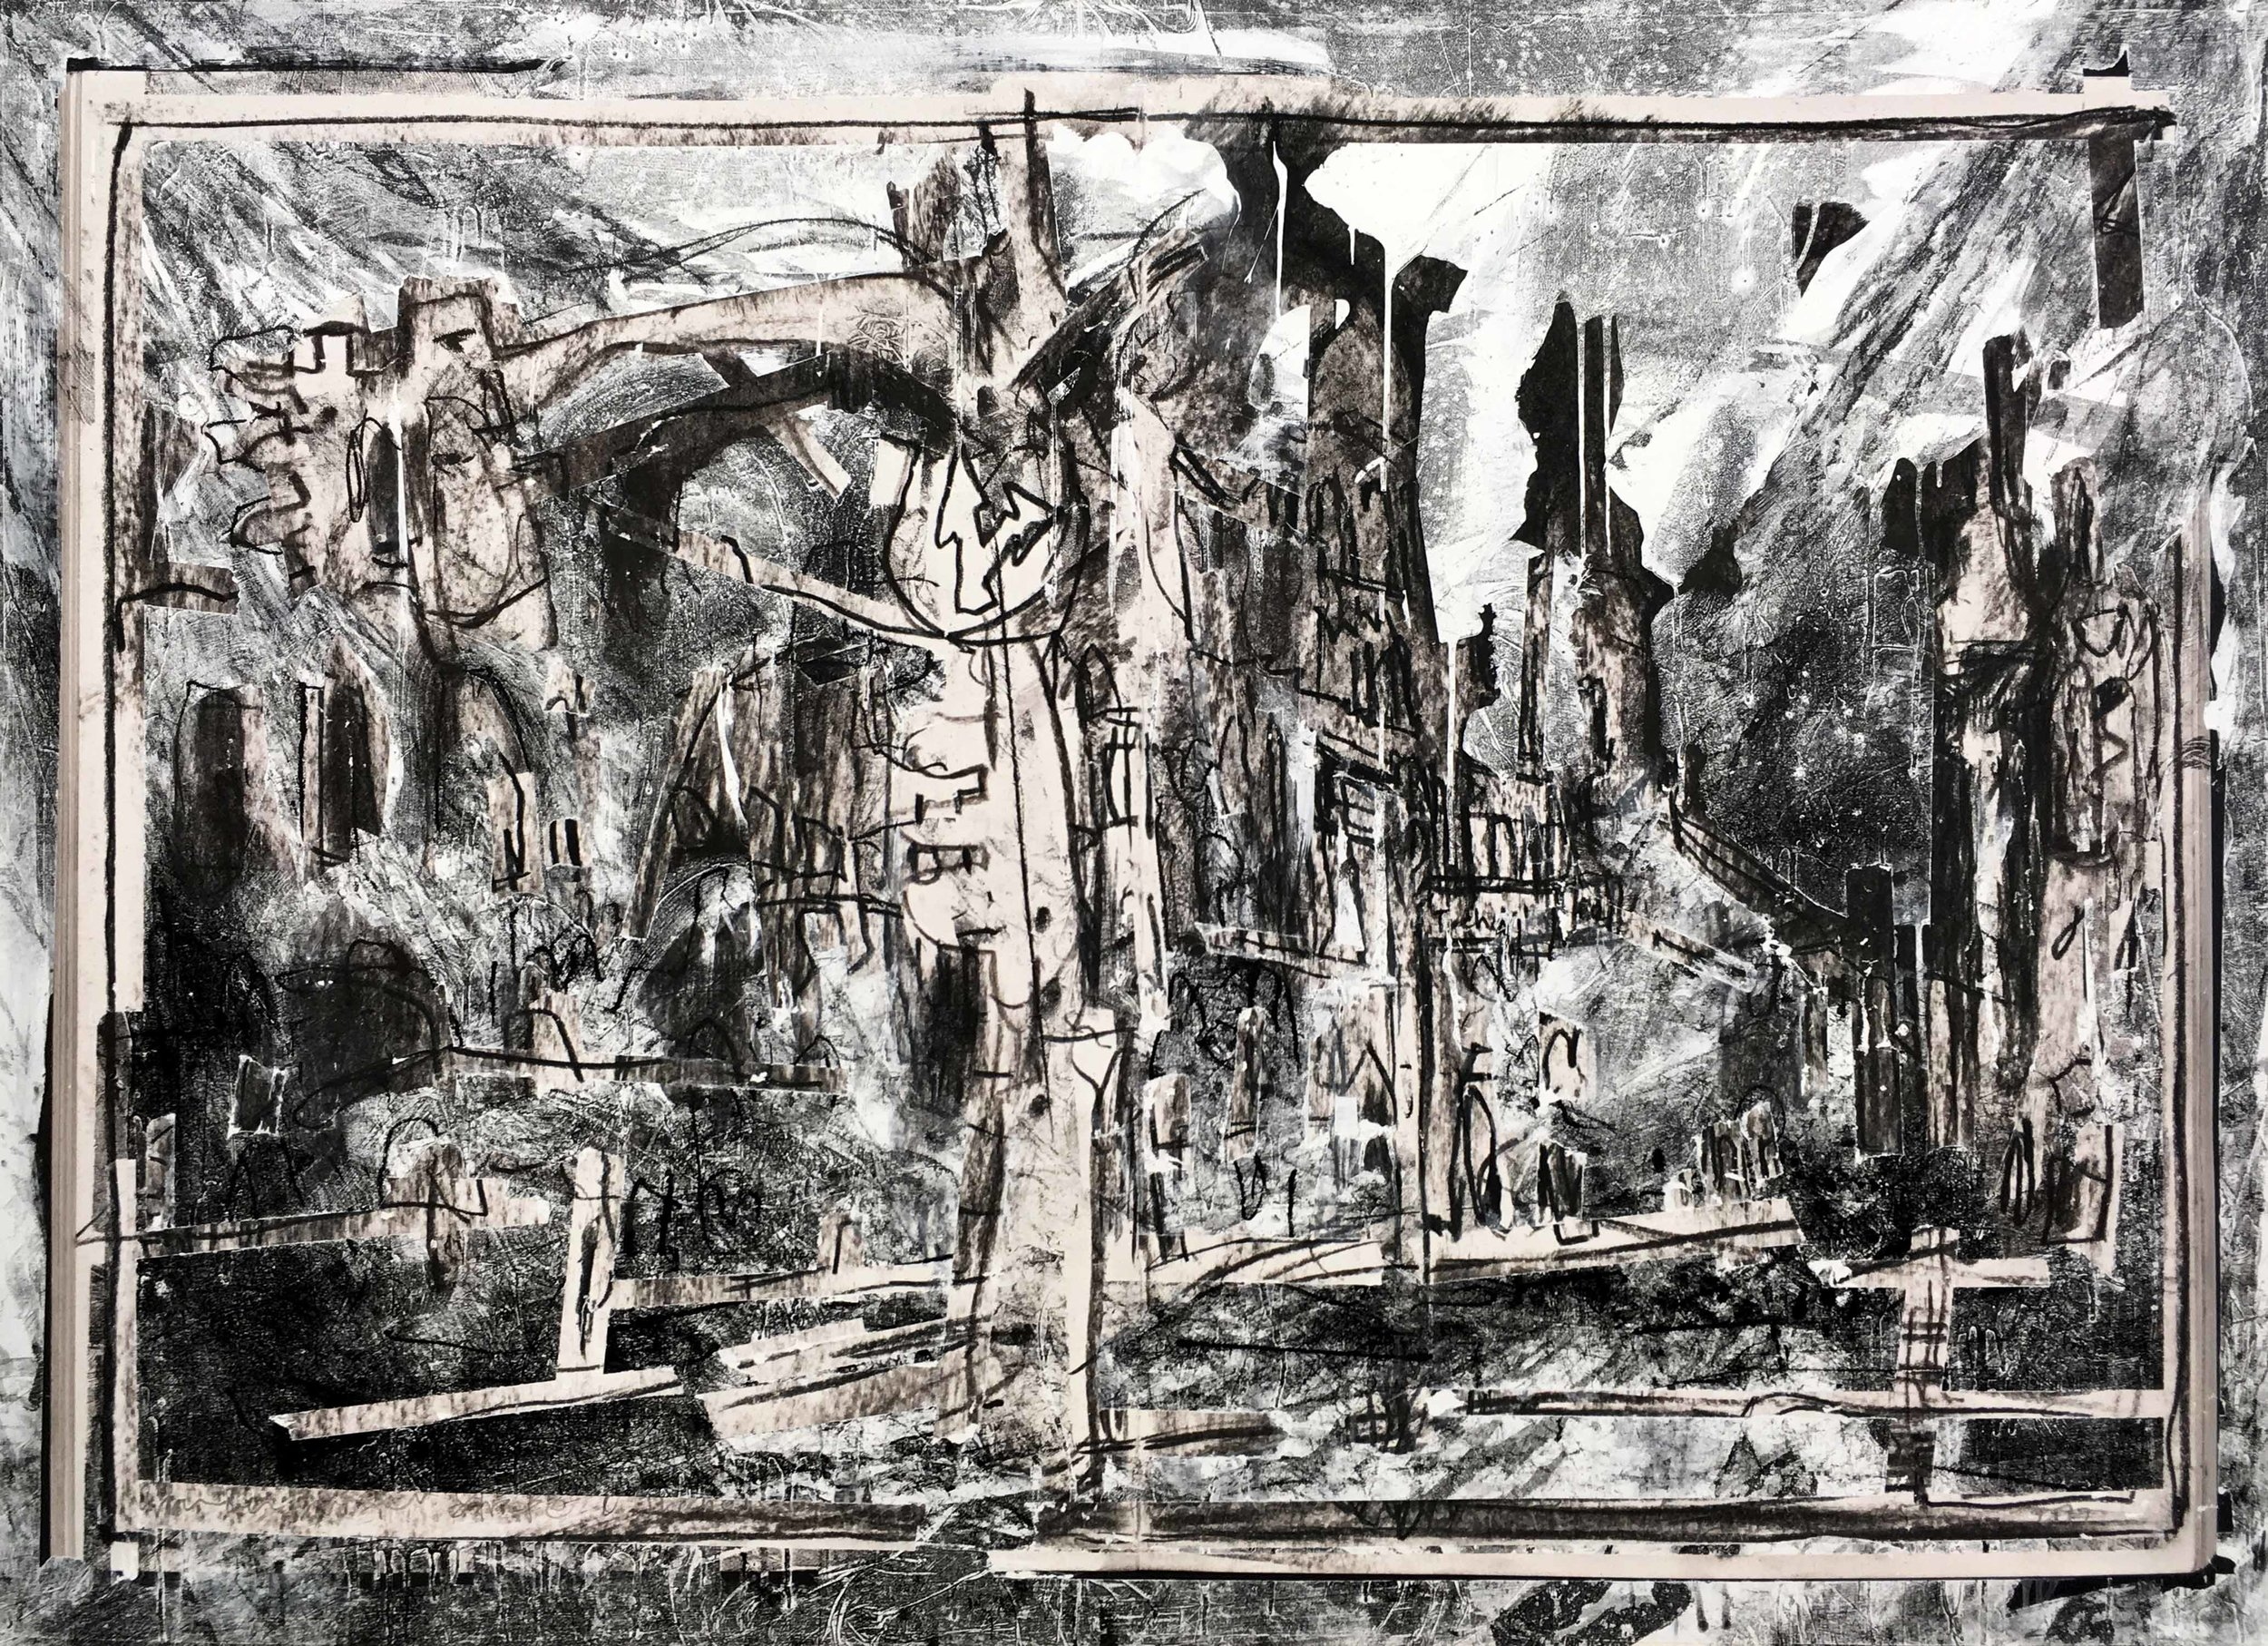 Oranienburgerstraße & Tucholsky Straße, Arthur Laidlaw, Laser toner, masking tape, acrylic primer, etching ink, charcoal, and pencil on paper, 2018